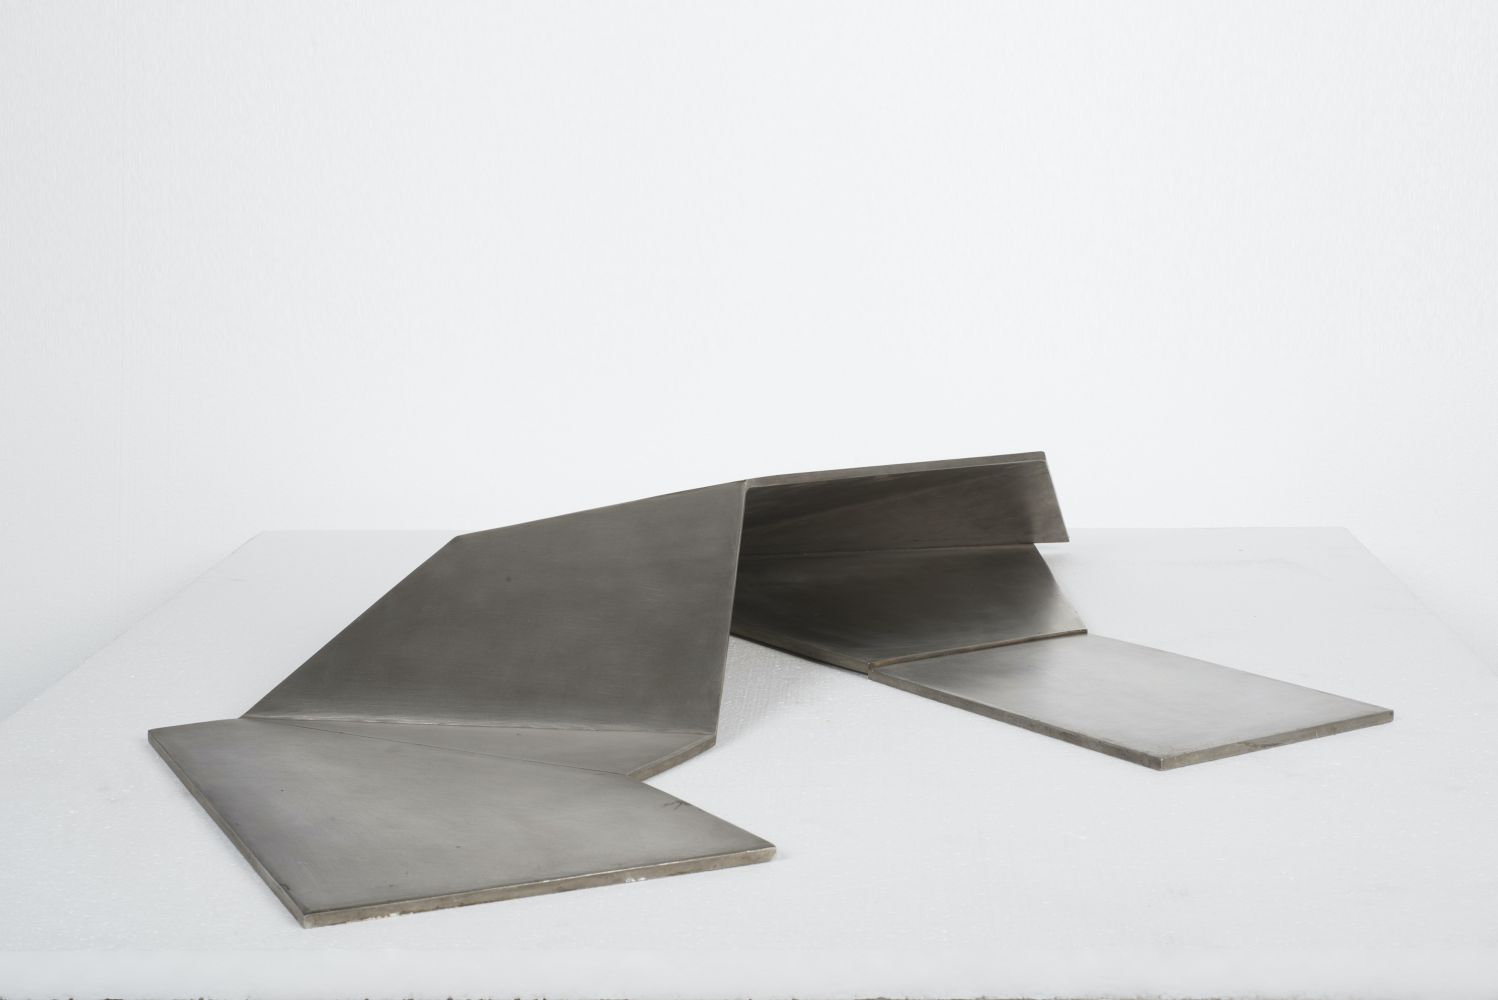 Angular, reflective, and sharp stainless steel sculpture with slate grey hues by Beverley Pepper.